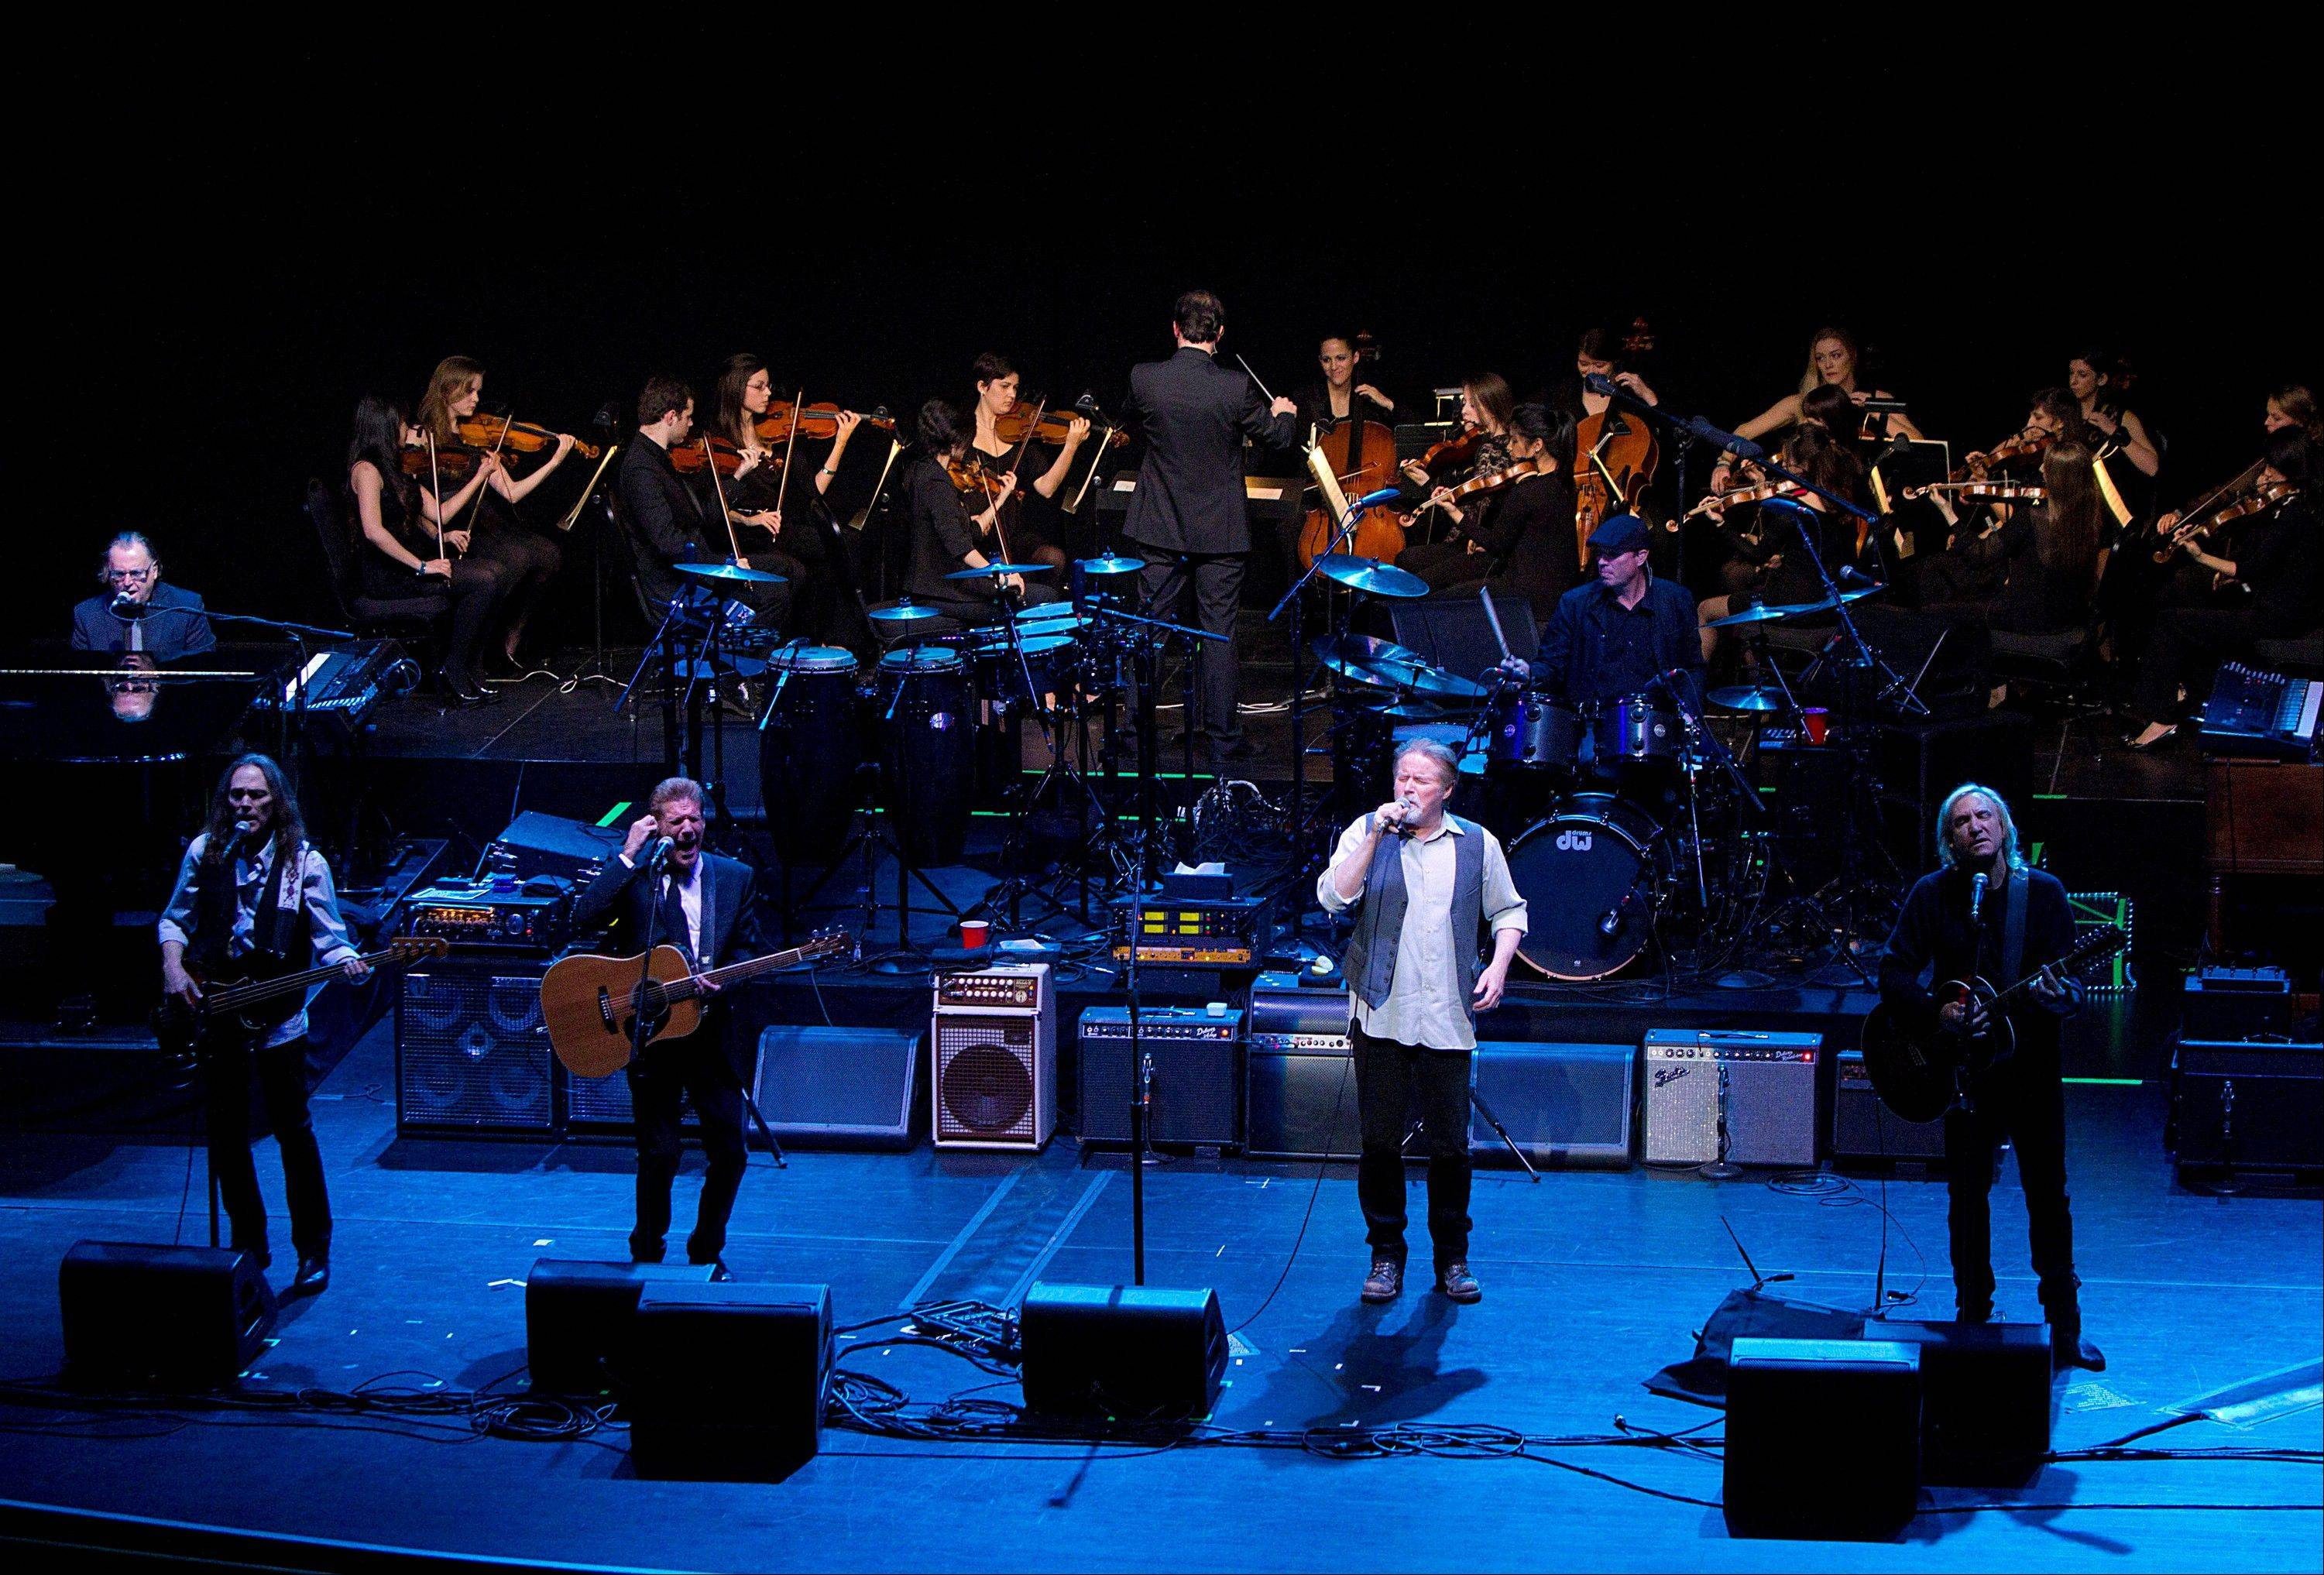 The NYU Steinhardt orchestral string ensemble performs with members of the Eagles, foreground from left, Timothy B. Schmit, Glenn Frey, Don Henley and Joe Walsh at the Inaugural Vision Award Gala Thursday in New York.